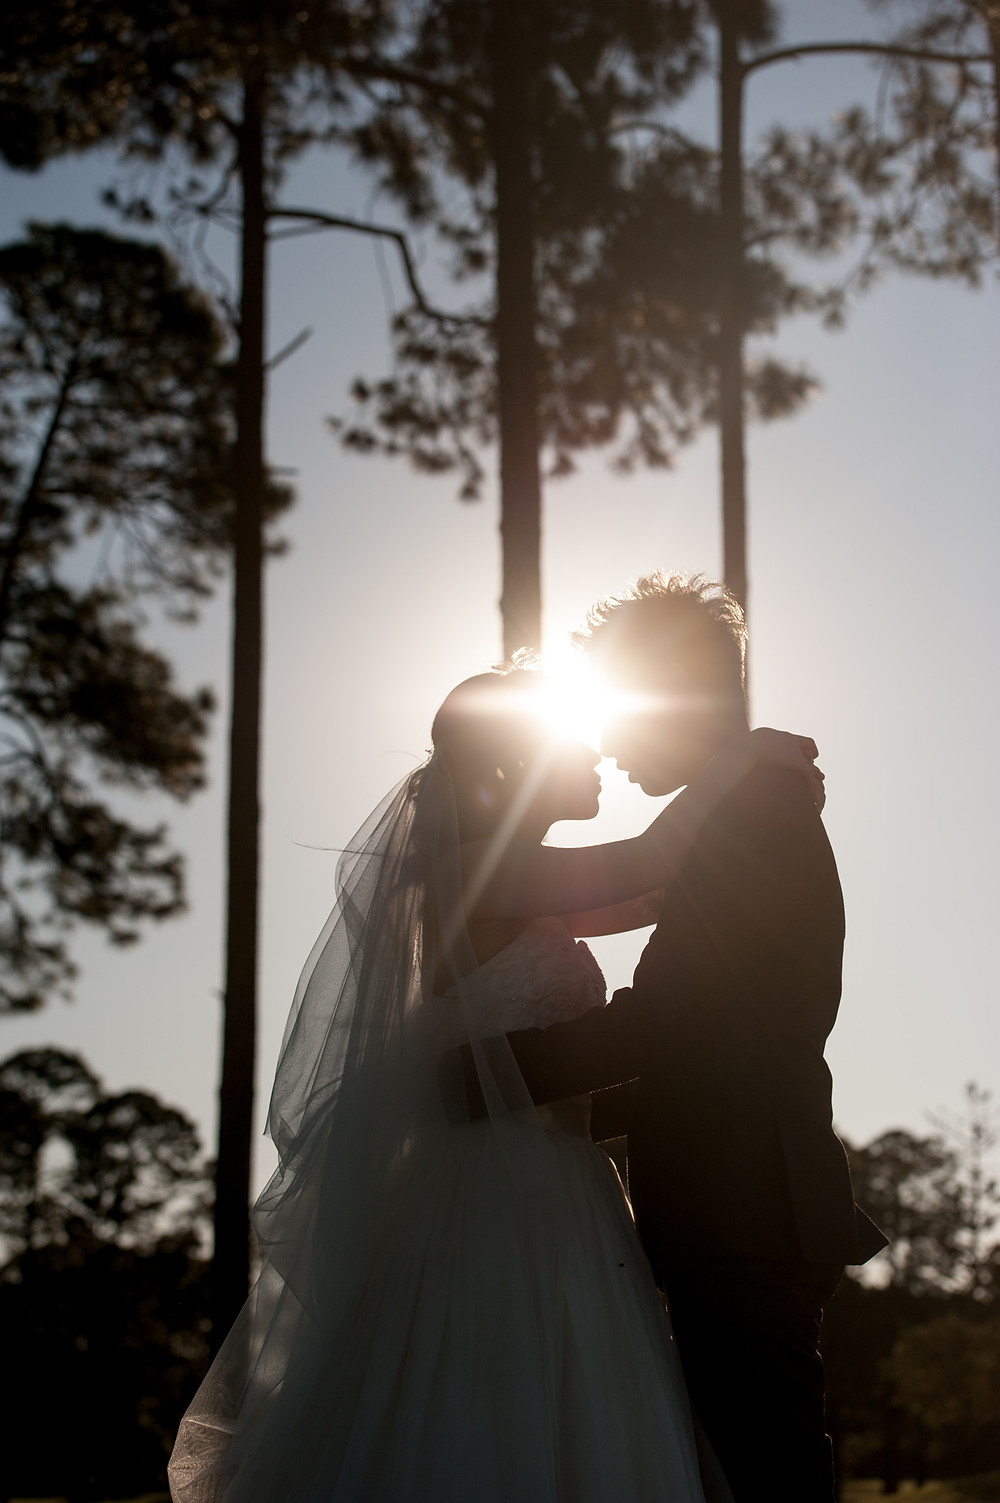 Jay Brosnan Photography | Sunshine Coast Wedding Photographer | Gold Coast Wedding Photographer | Gold Coast Wedding | Sanctuary cove Wedding | Brisbane Wedding Photographer | Intercontinental Sanctuary Cove | Wedding Chapel